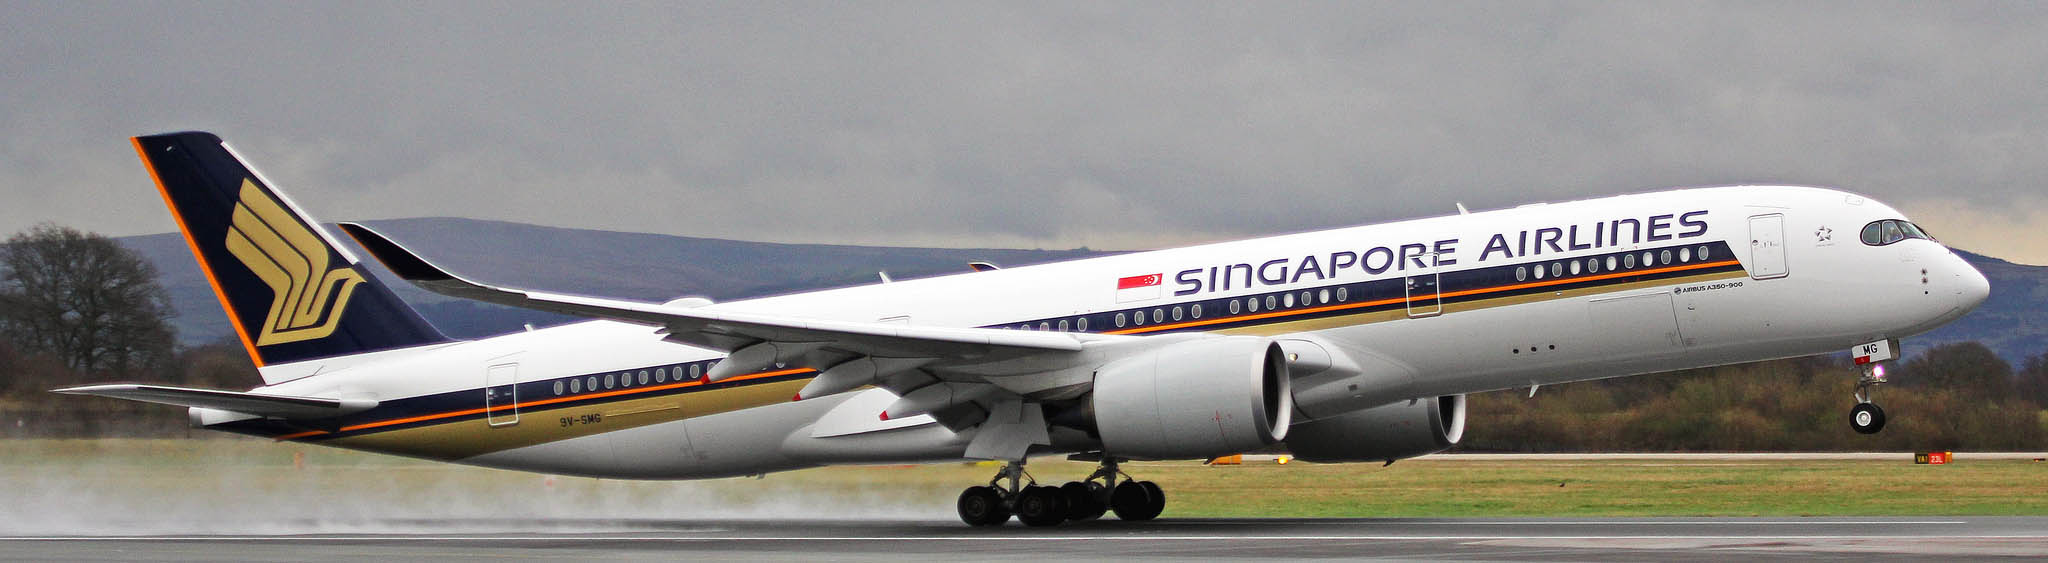 Singapore Airlines Airbus A350-900 on touchdown.